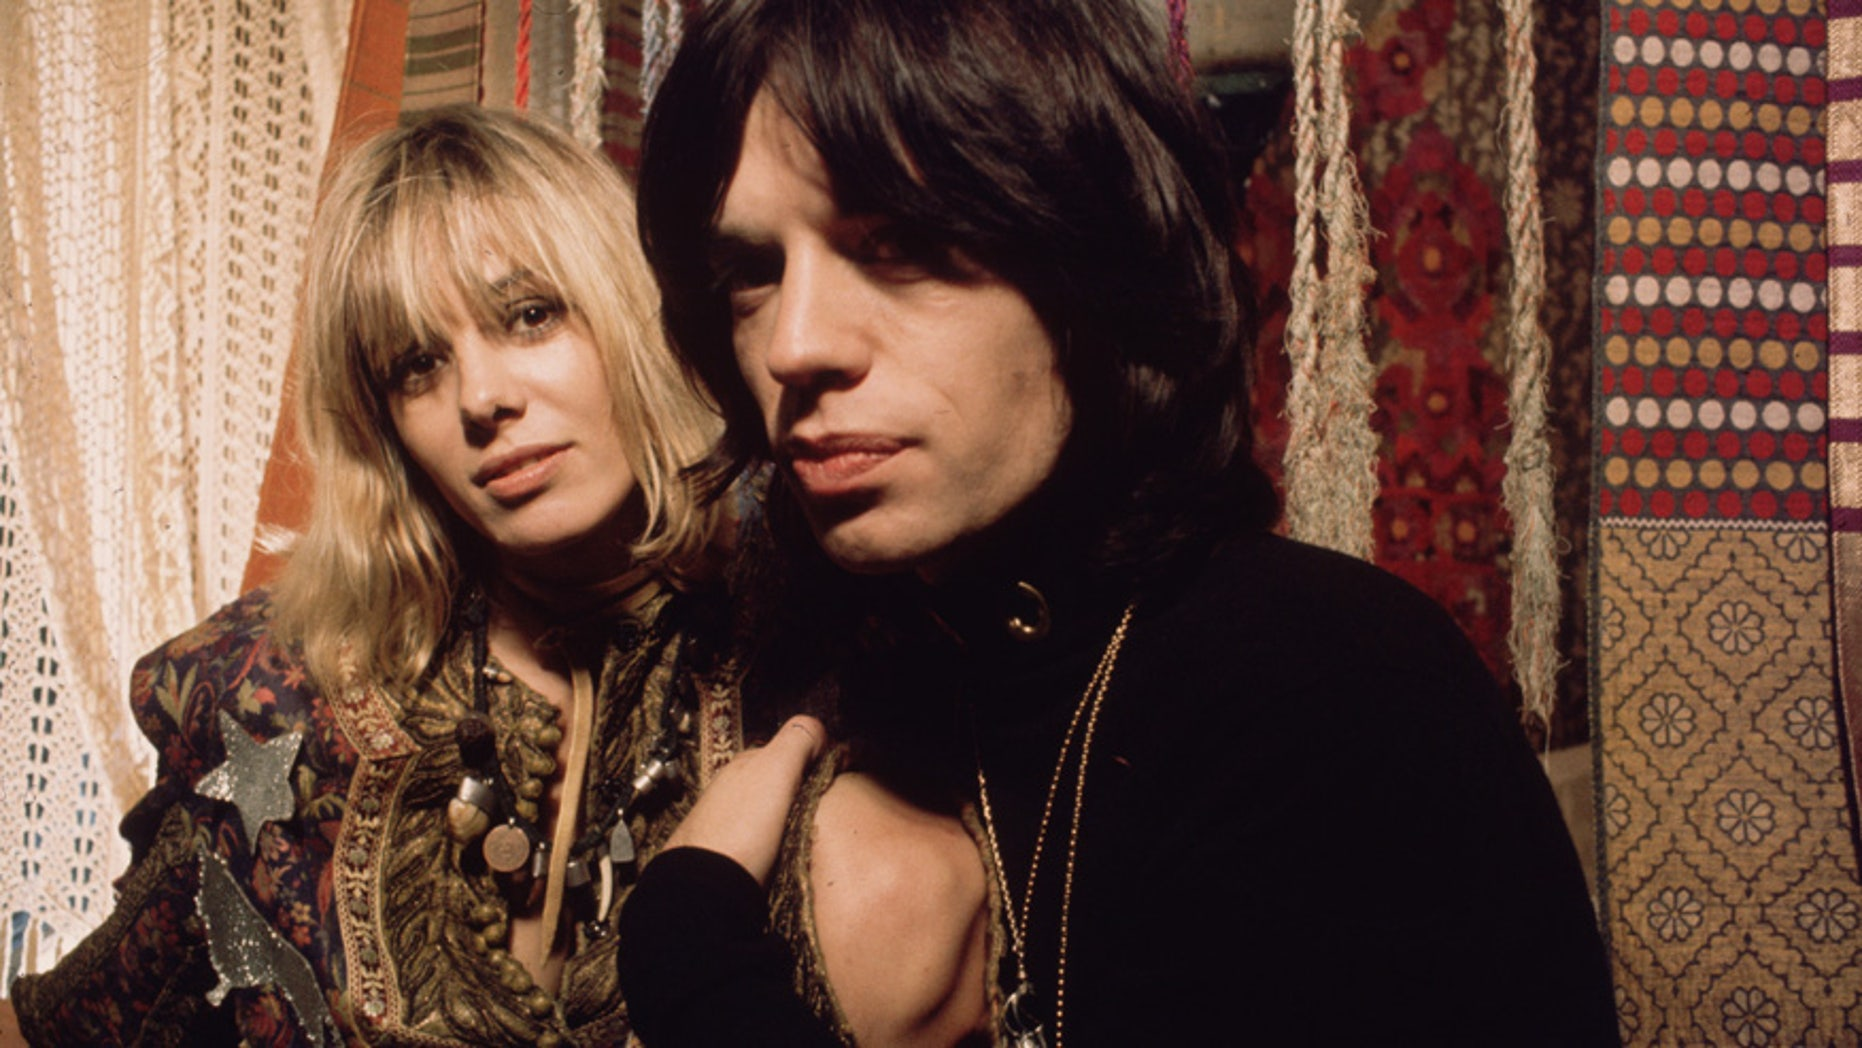 Anita Pallenberg and Mick Jagger playing Pherber and Turner in a scene from 'Performance', co-directed by Nicolas Roeg, 1970.